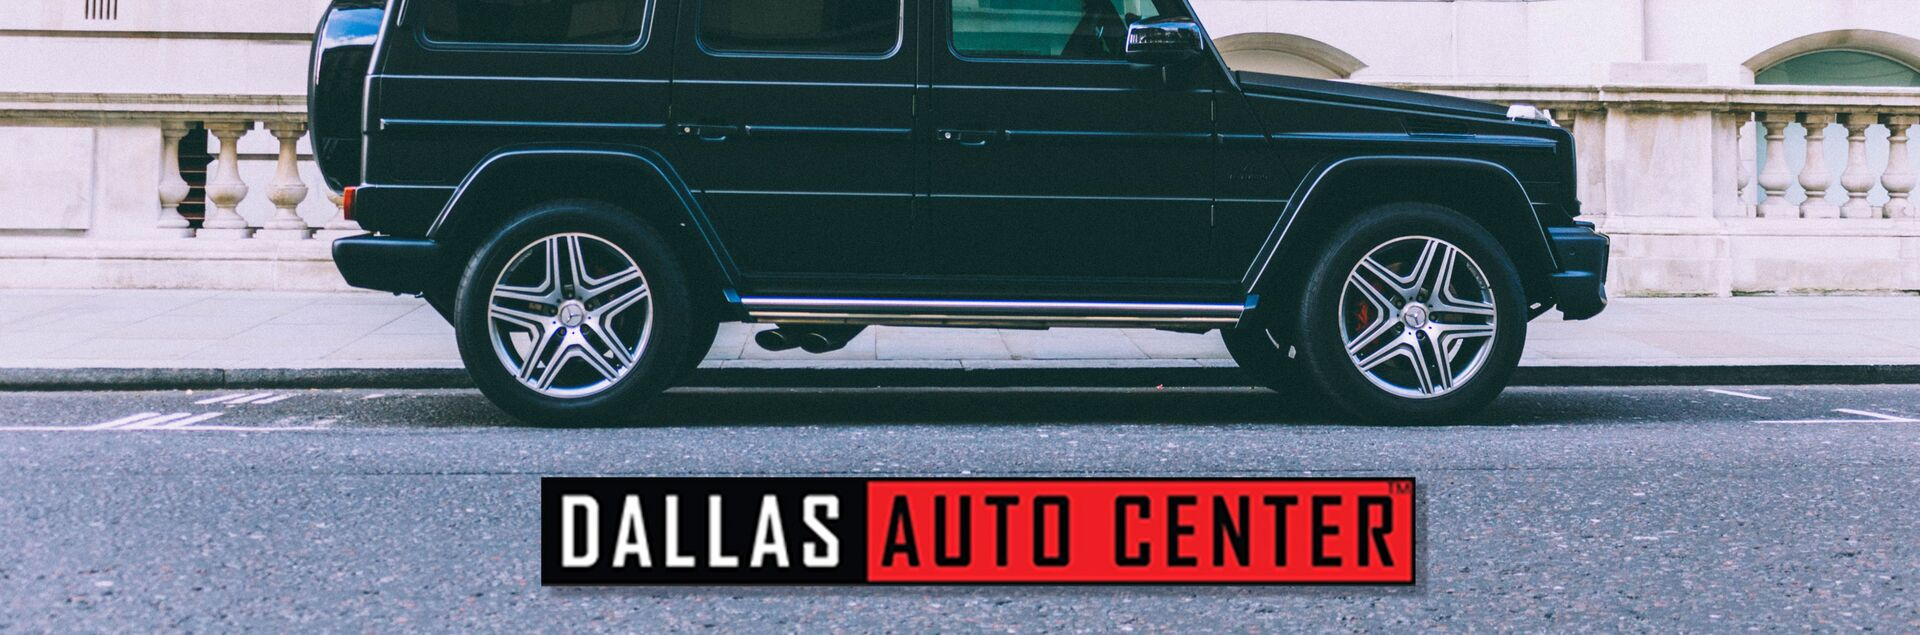 Dallas Auto Center